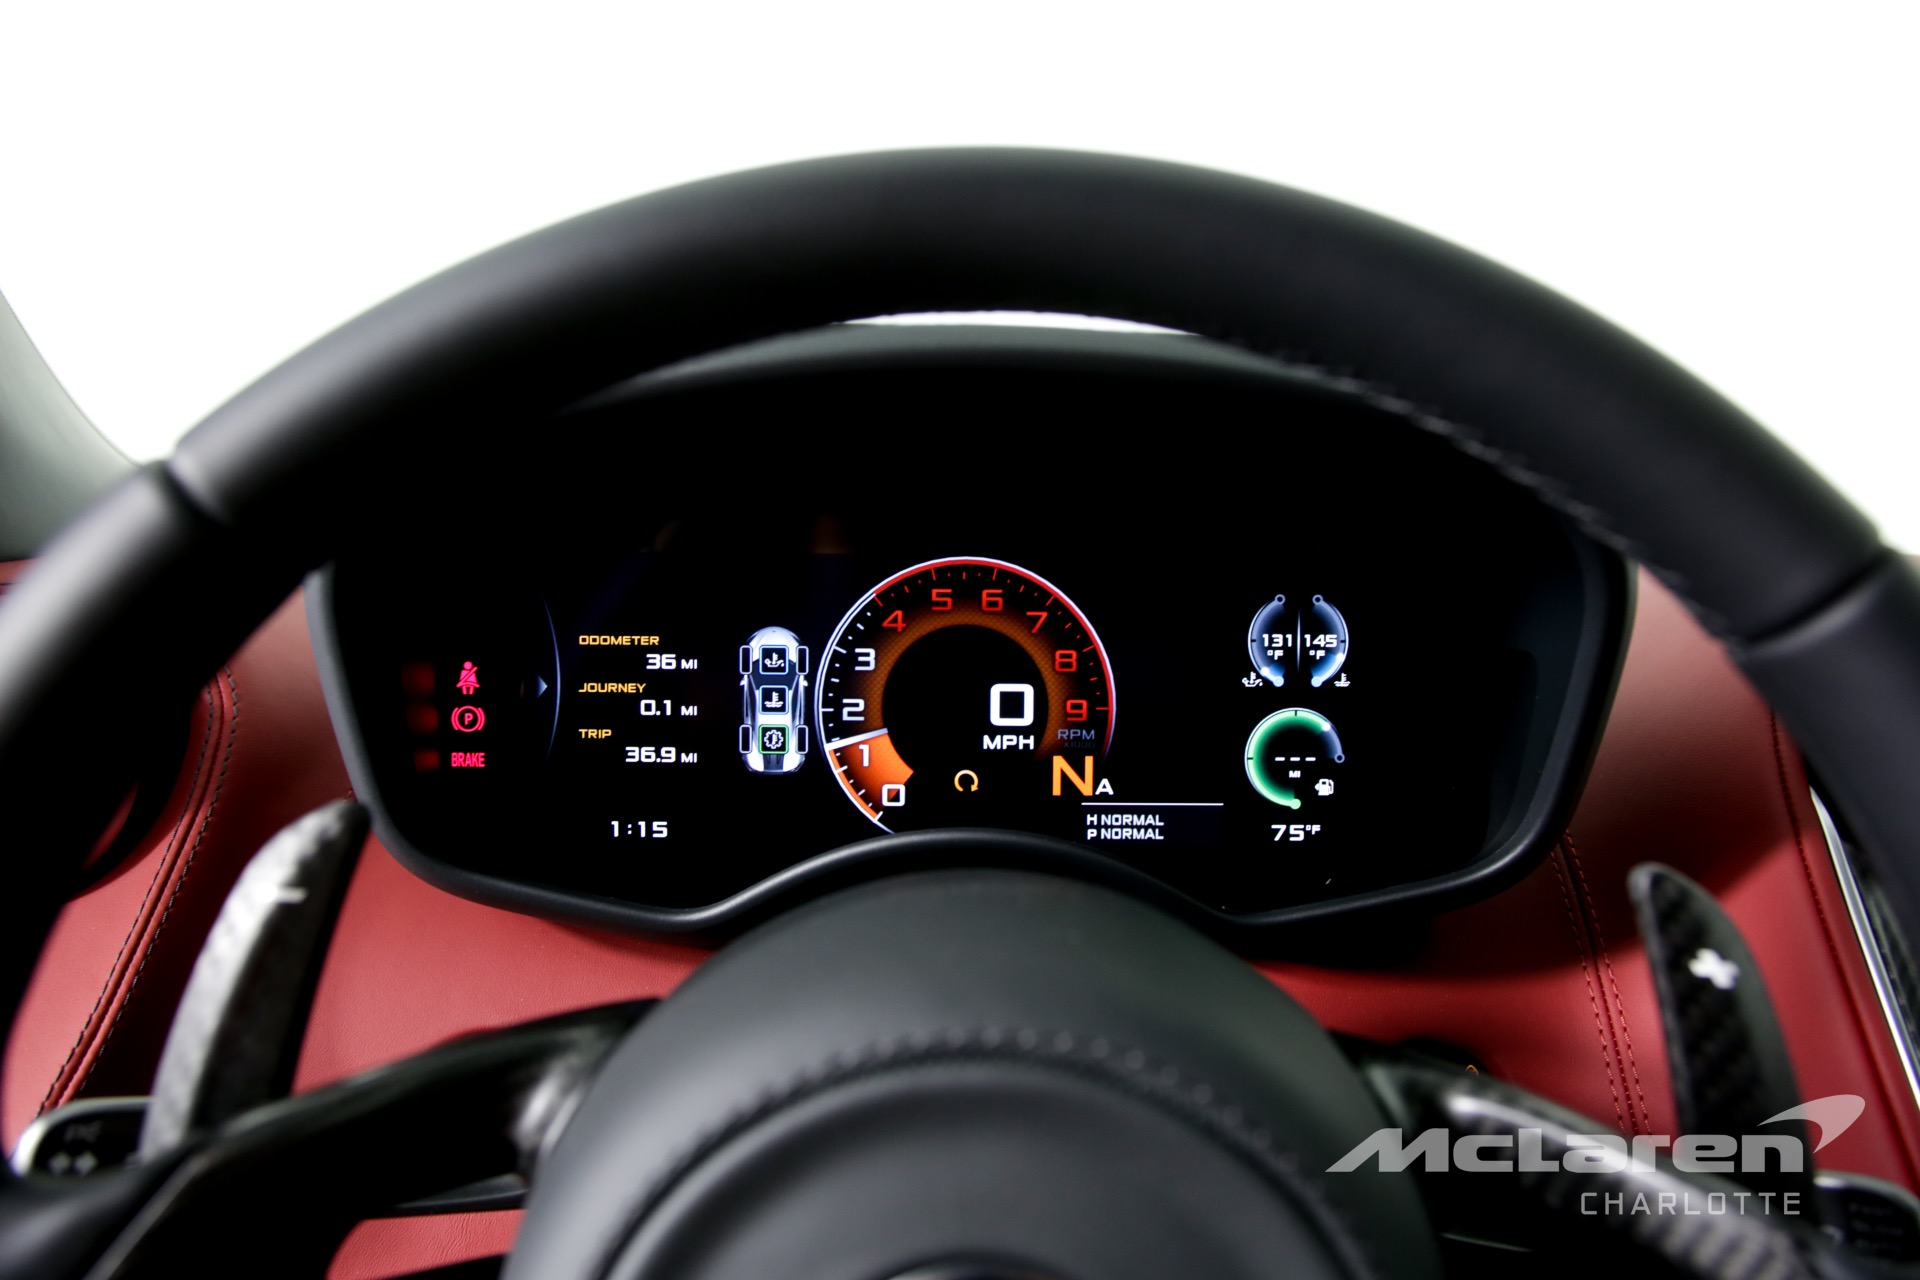 Normal Rpm At 75 Mph